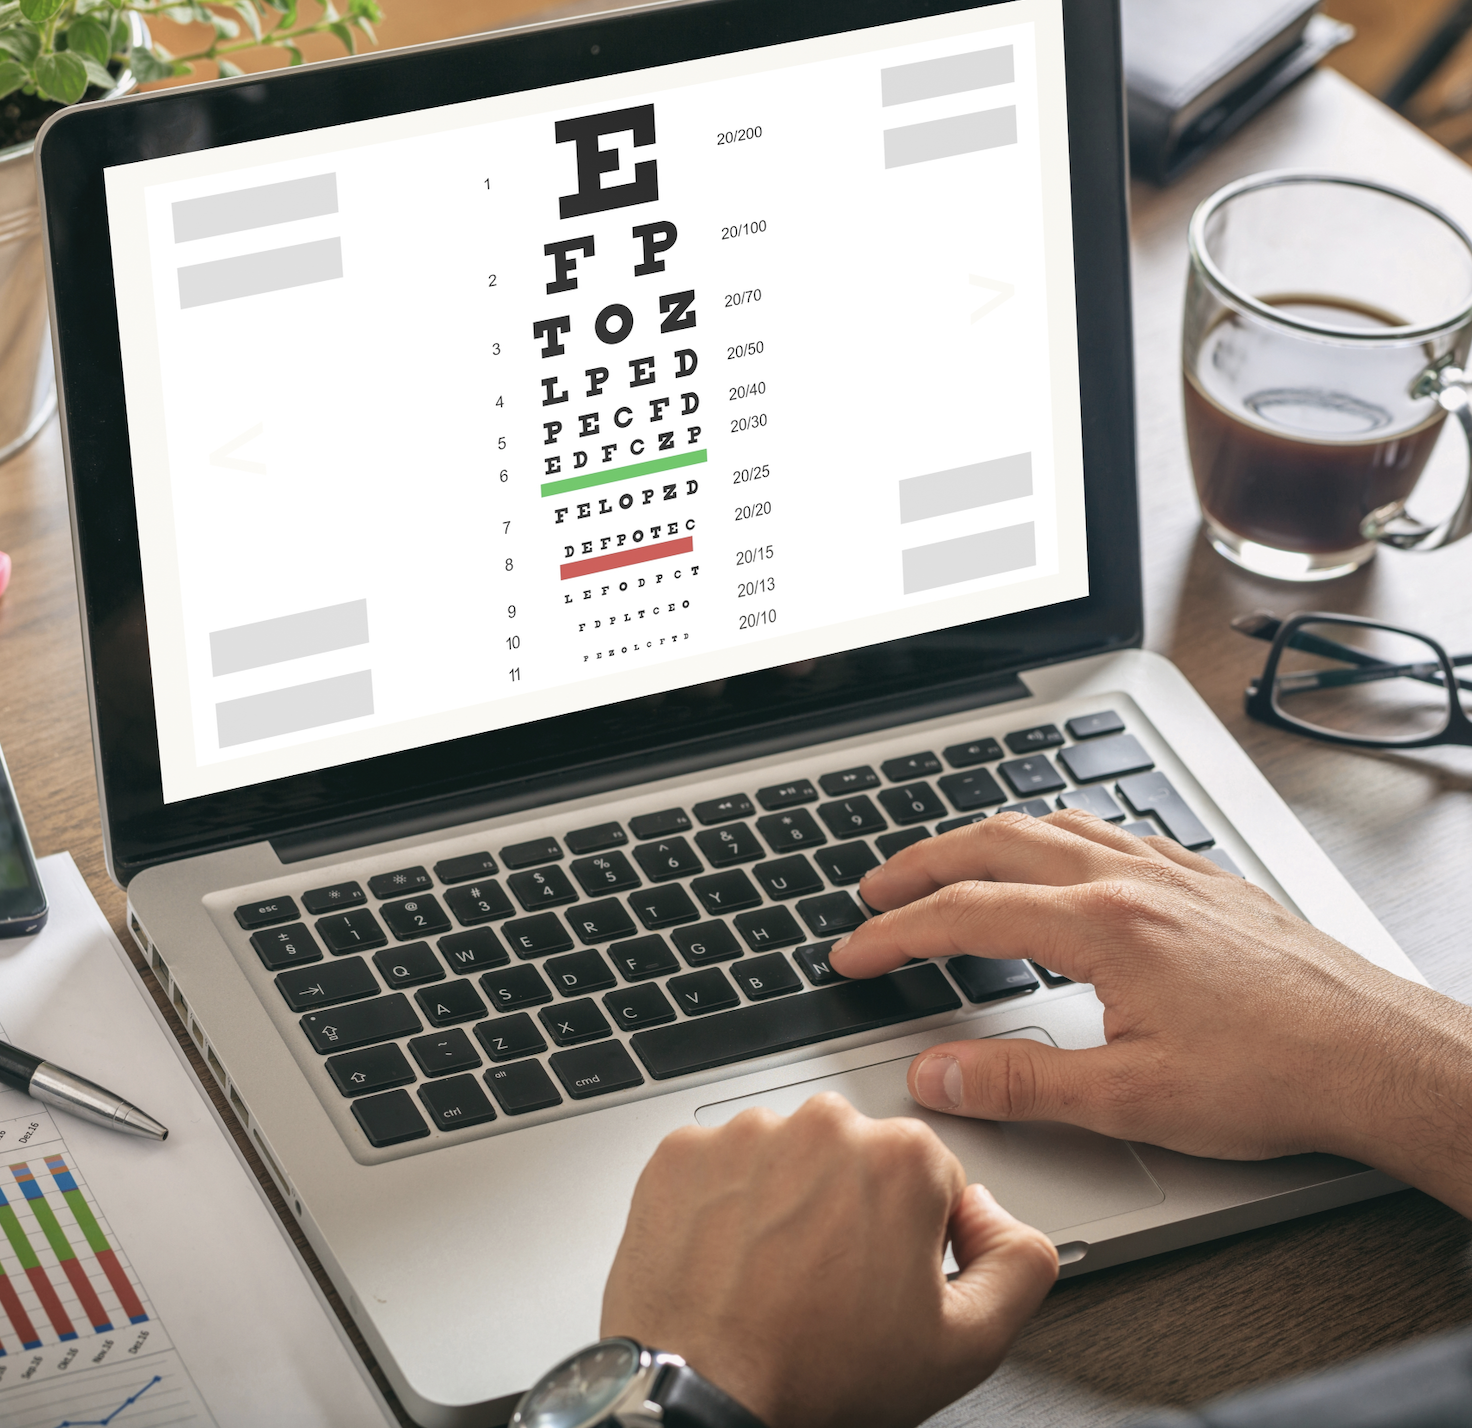 Are Online Vision Tests a Safe Way to Renew Your Prescription?